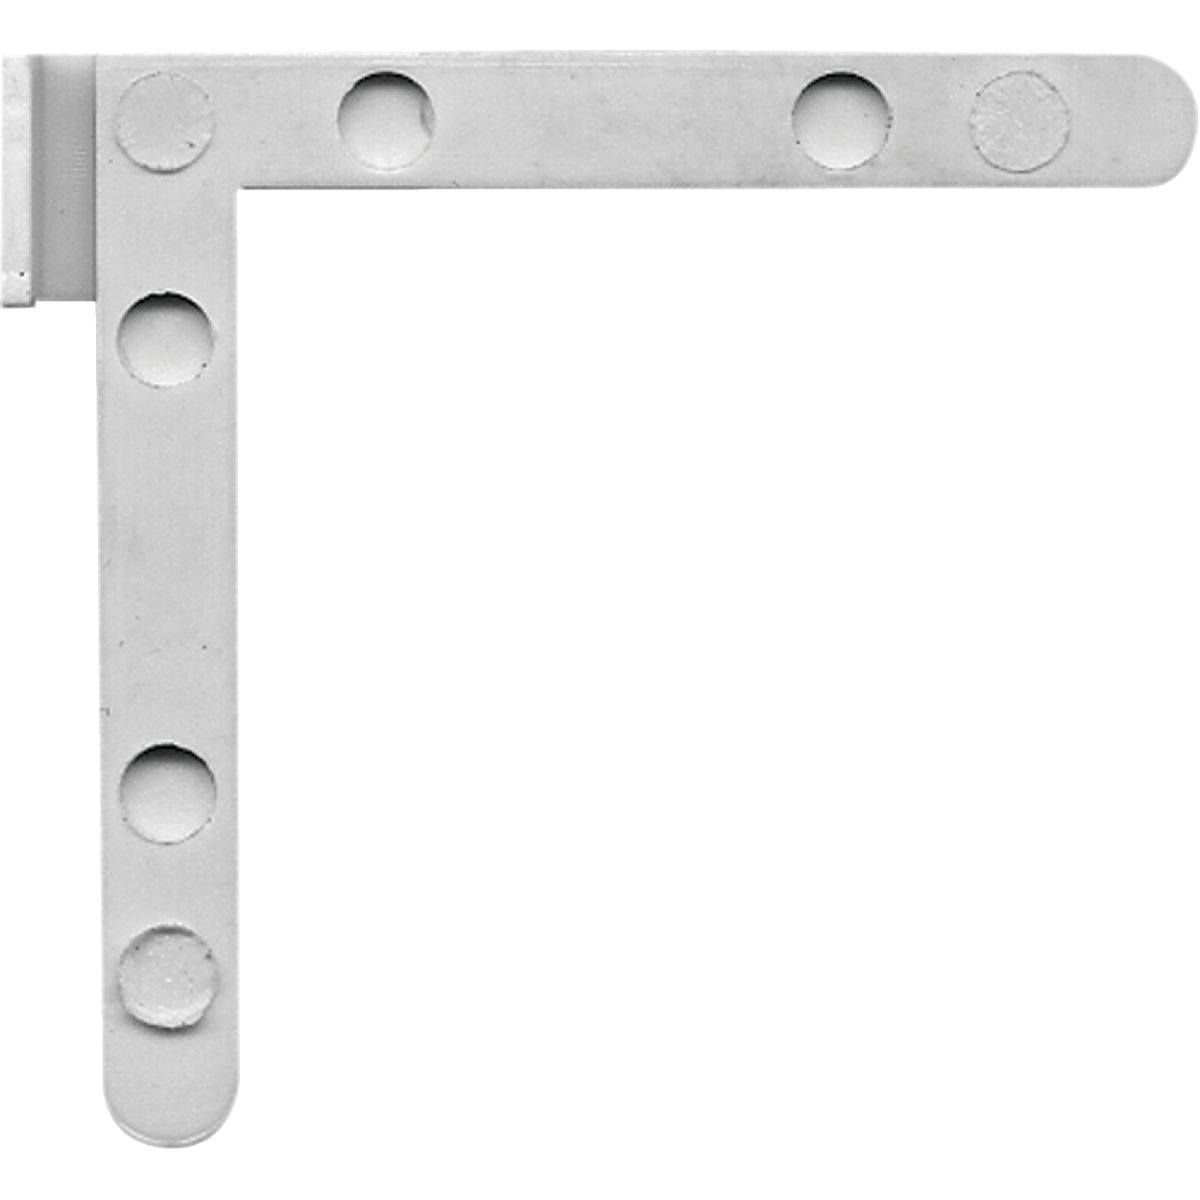 3/16X3/16 NYL CORNER KEY - PL14950 by Prime Line Products